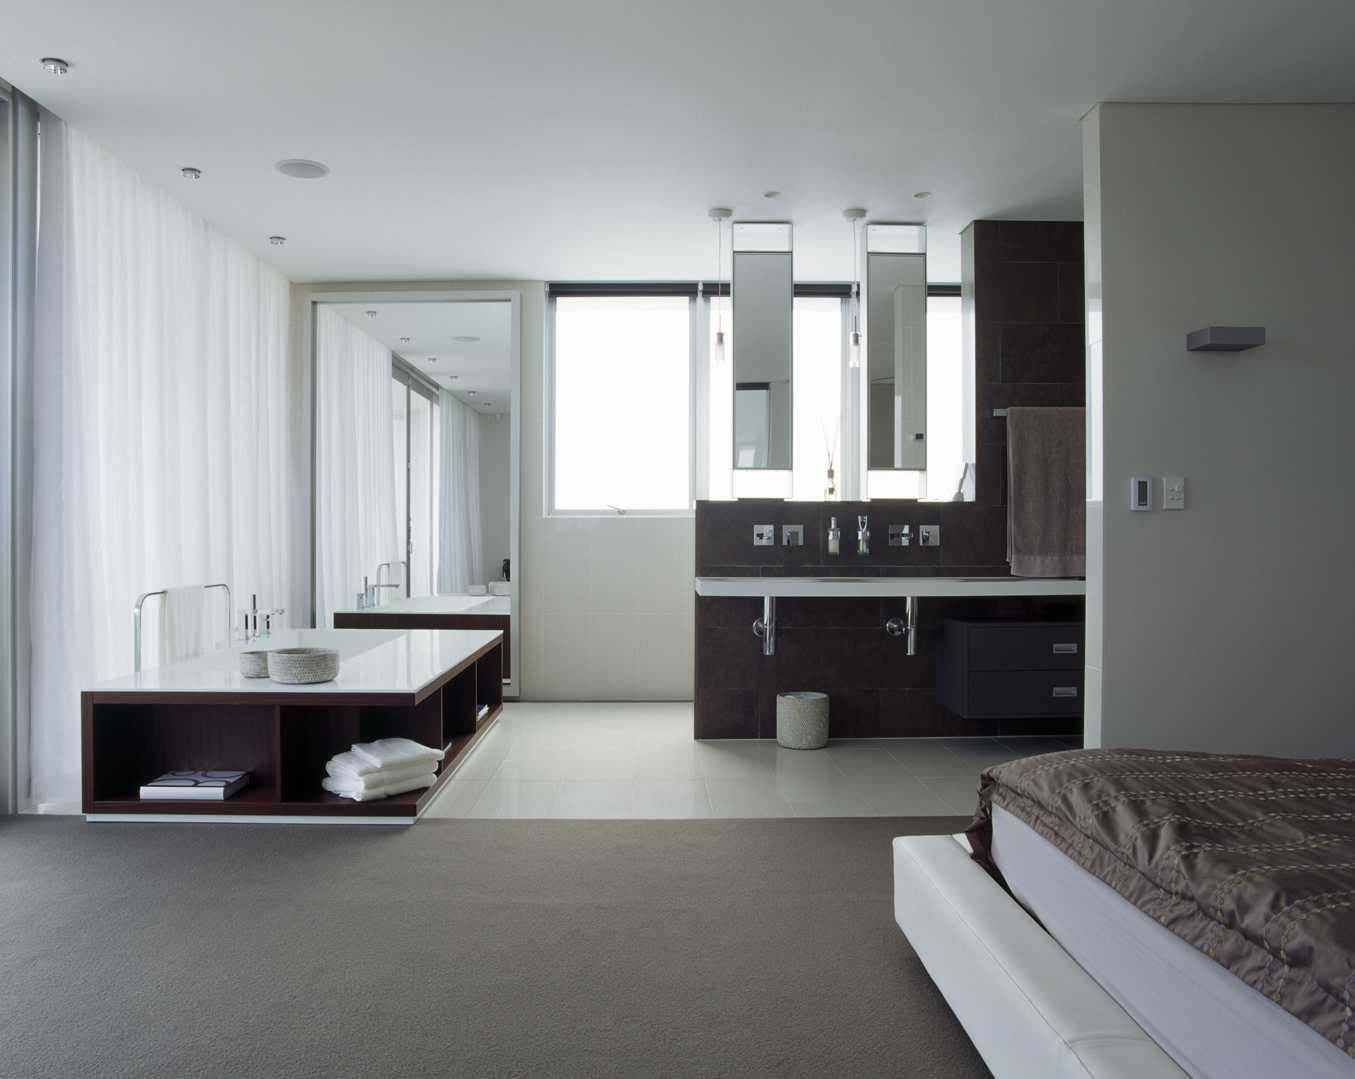 Minosa: The new Modern Design - Parents Retreat vs Ensuite; The Open ...